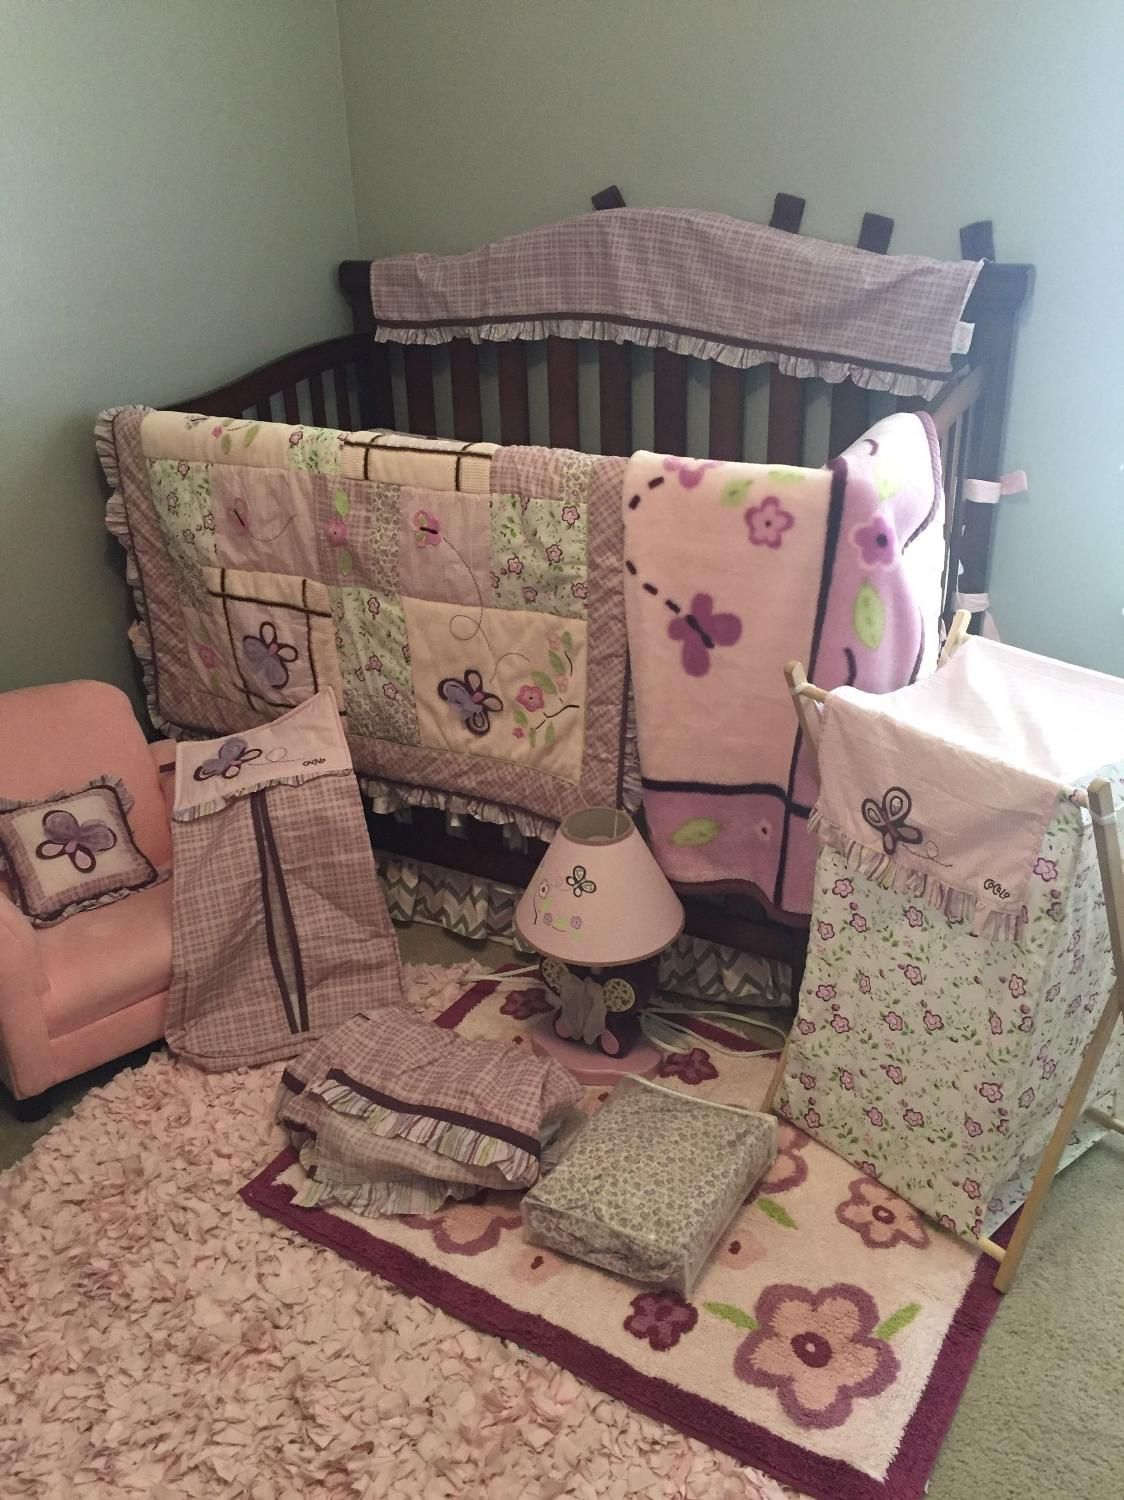 Find More Cocalo Sugar Plum Baby Bedding Set With Extra Accessories